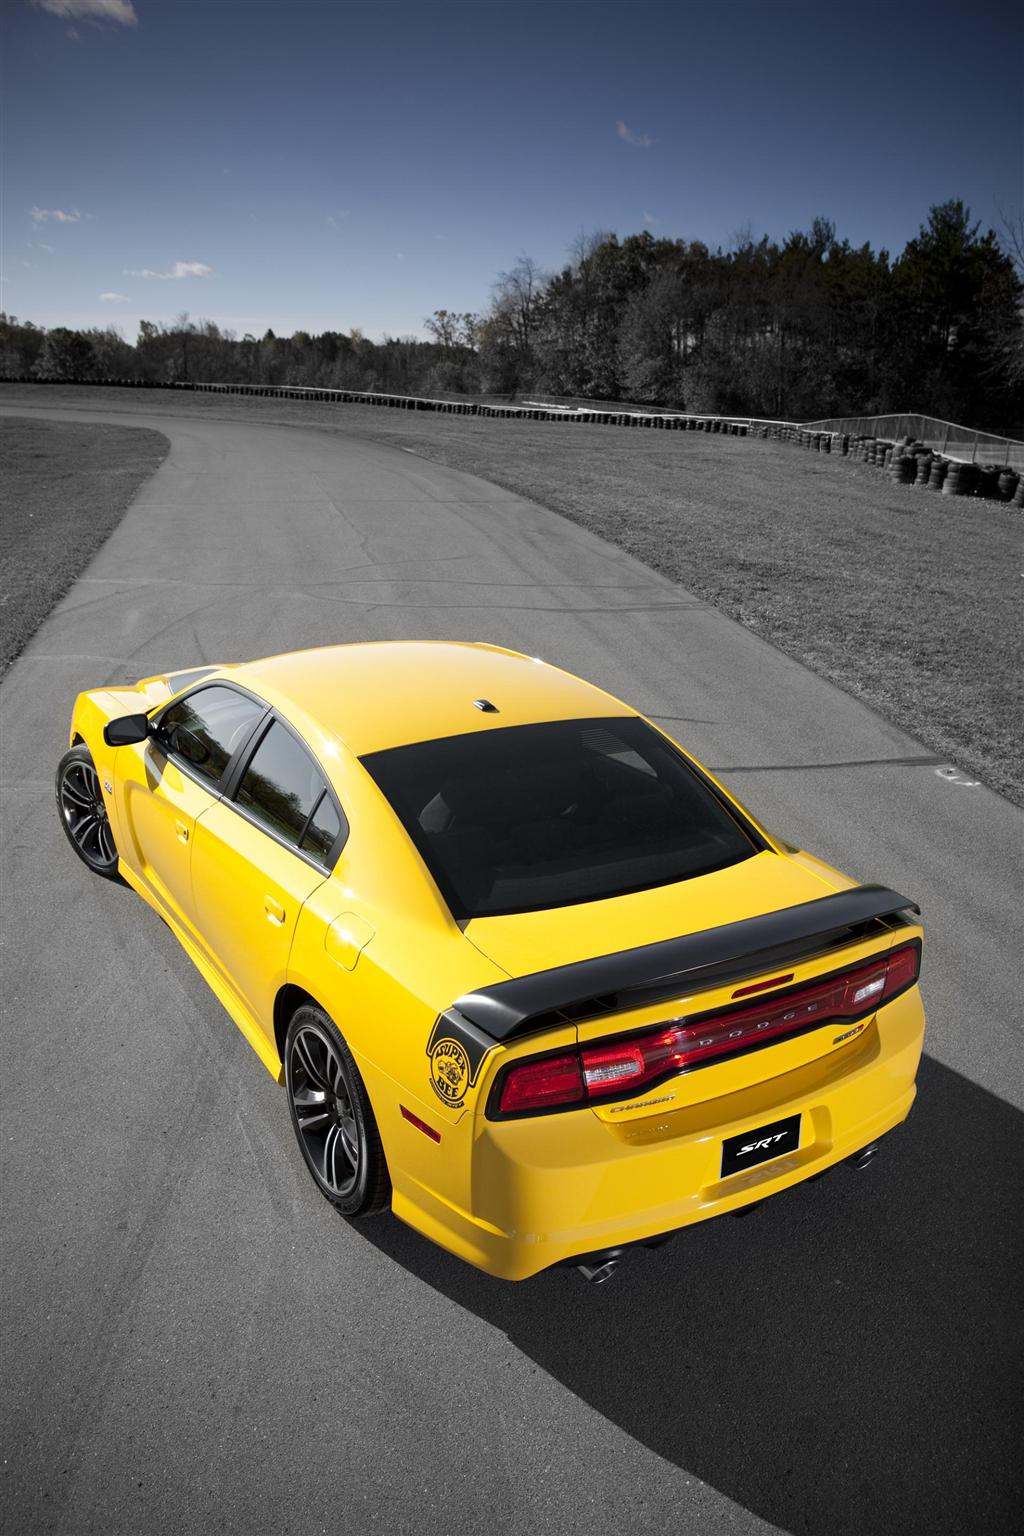 2012 dodge charger srt8 super bee image. Black Bedroom Furniture Sets. Home Design Ideas